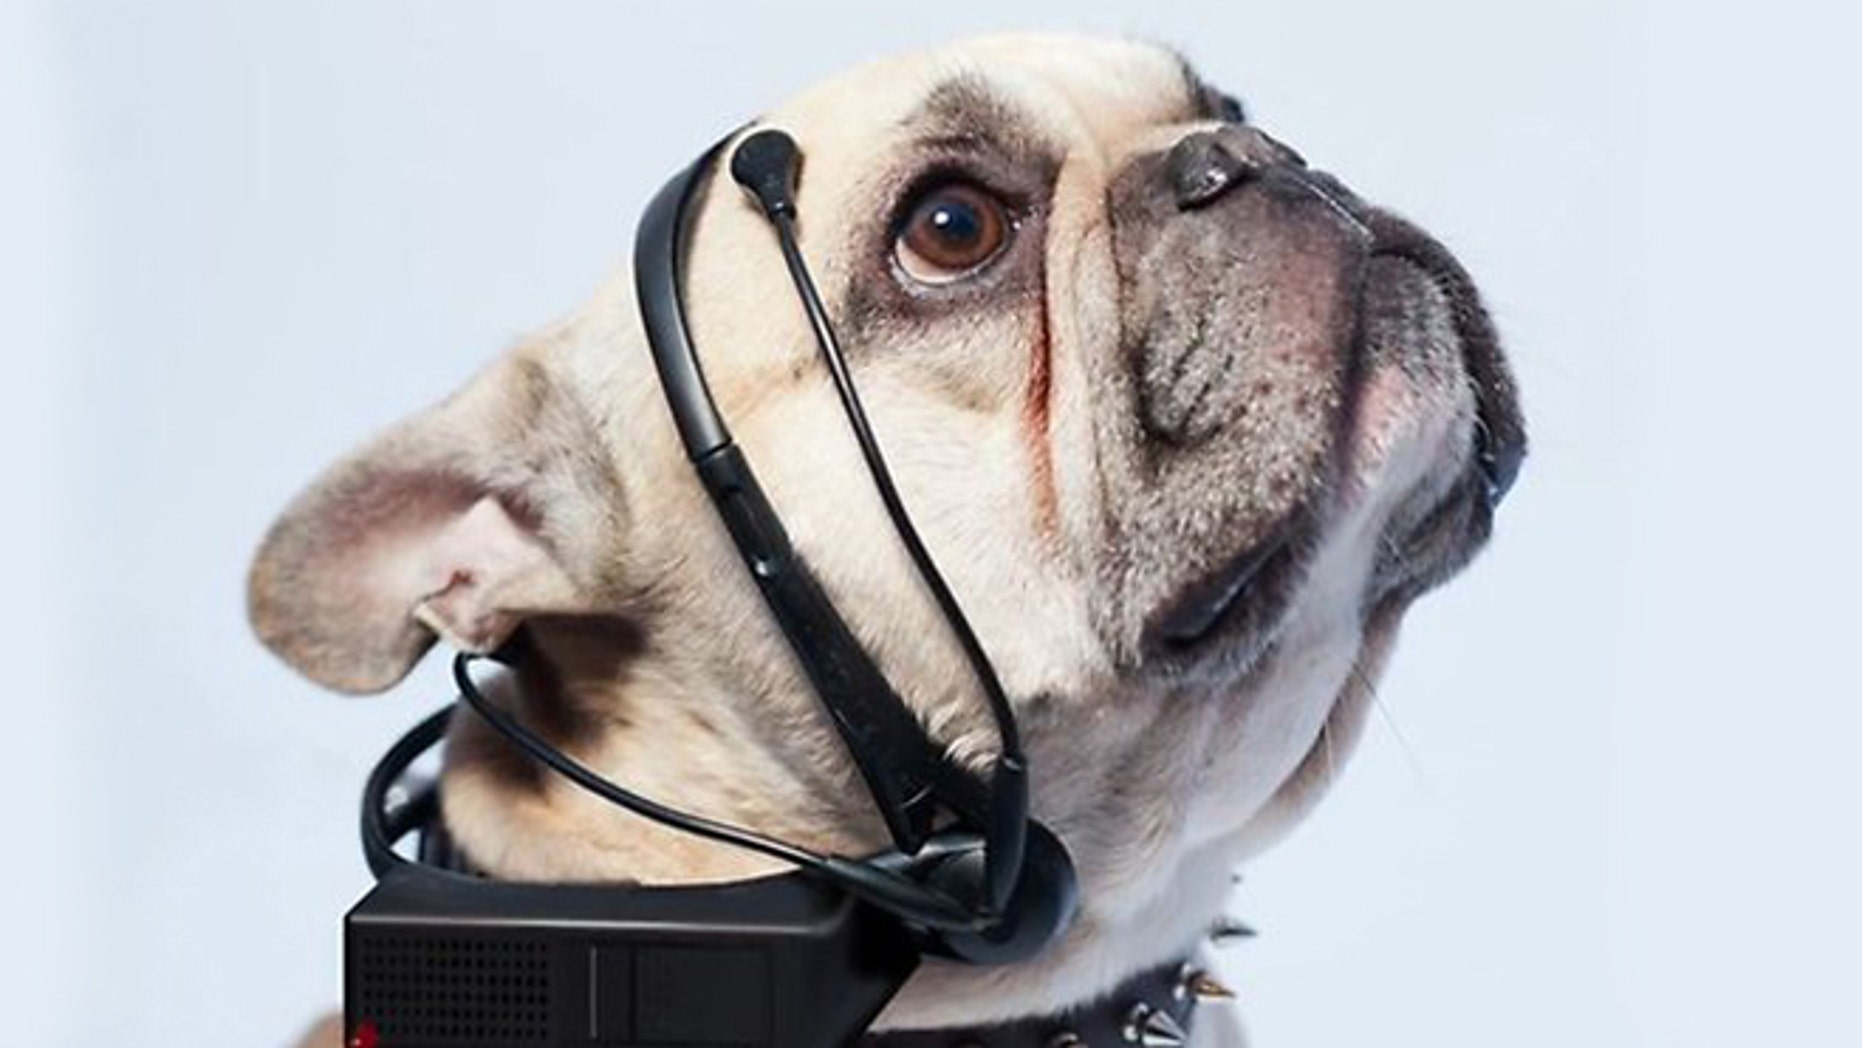 Want to talk to the animals? The Nordic Society for Invention and Discovery's dog translator has now been fully funded.